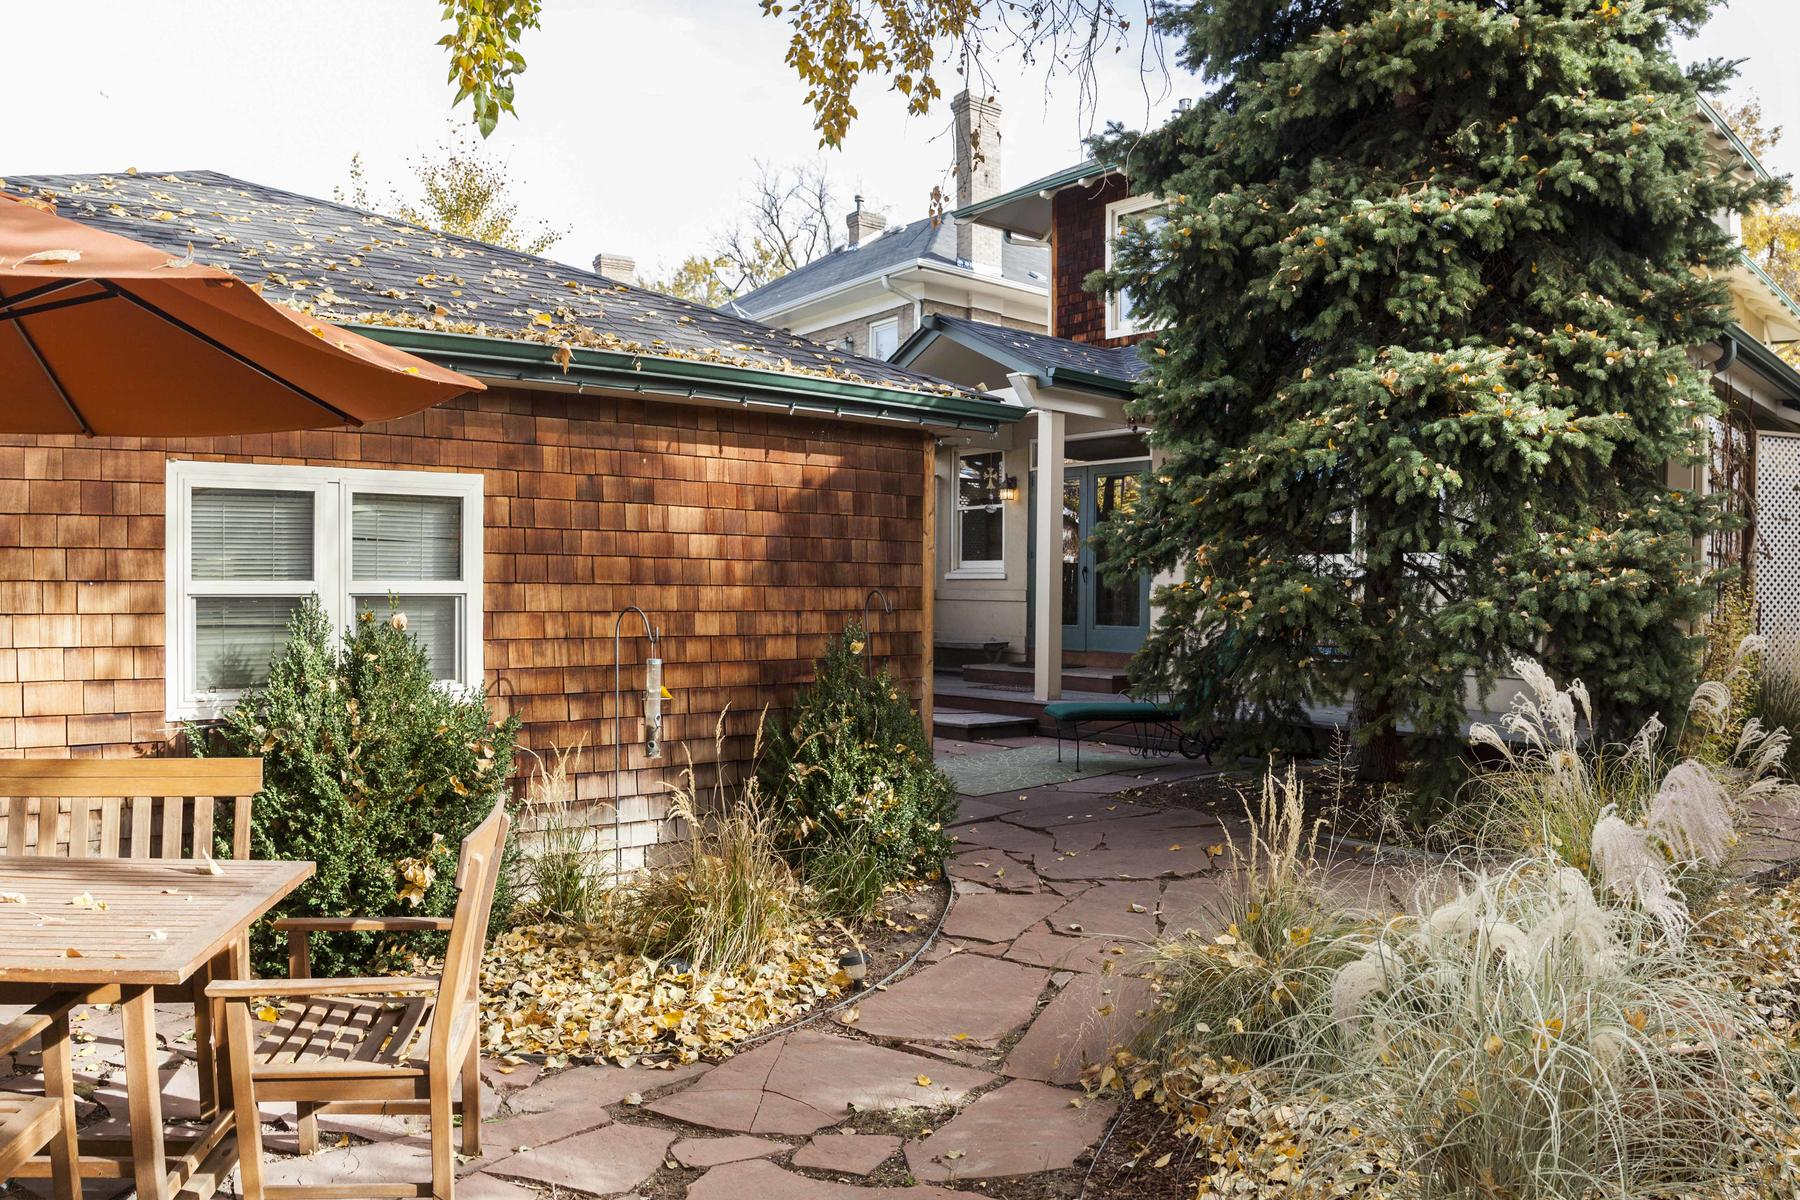 Additional photo for property listing at Wonderful Colors Inside And Out 431 N Marion St Denver, Colorado 80218 United States